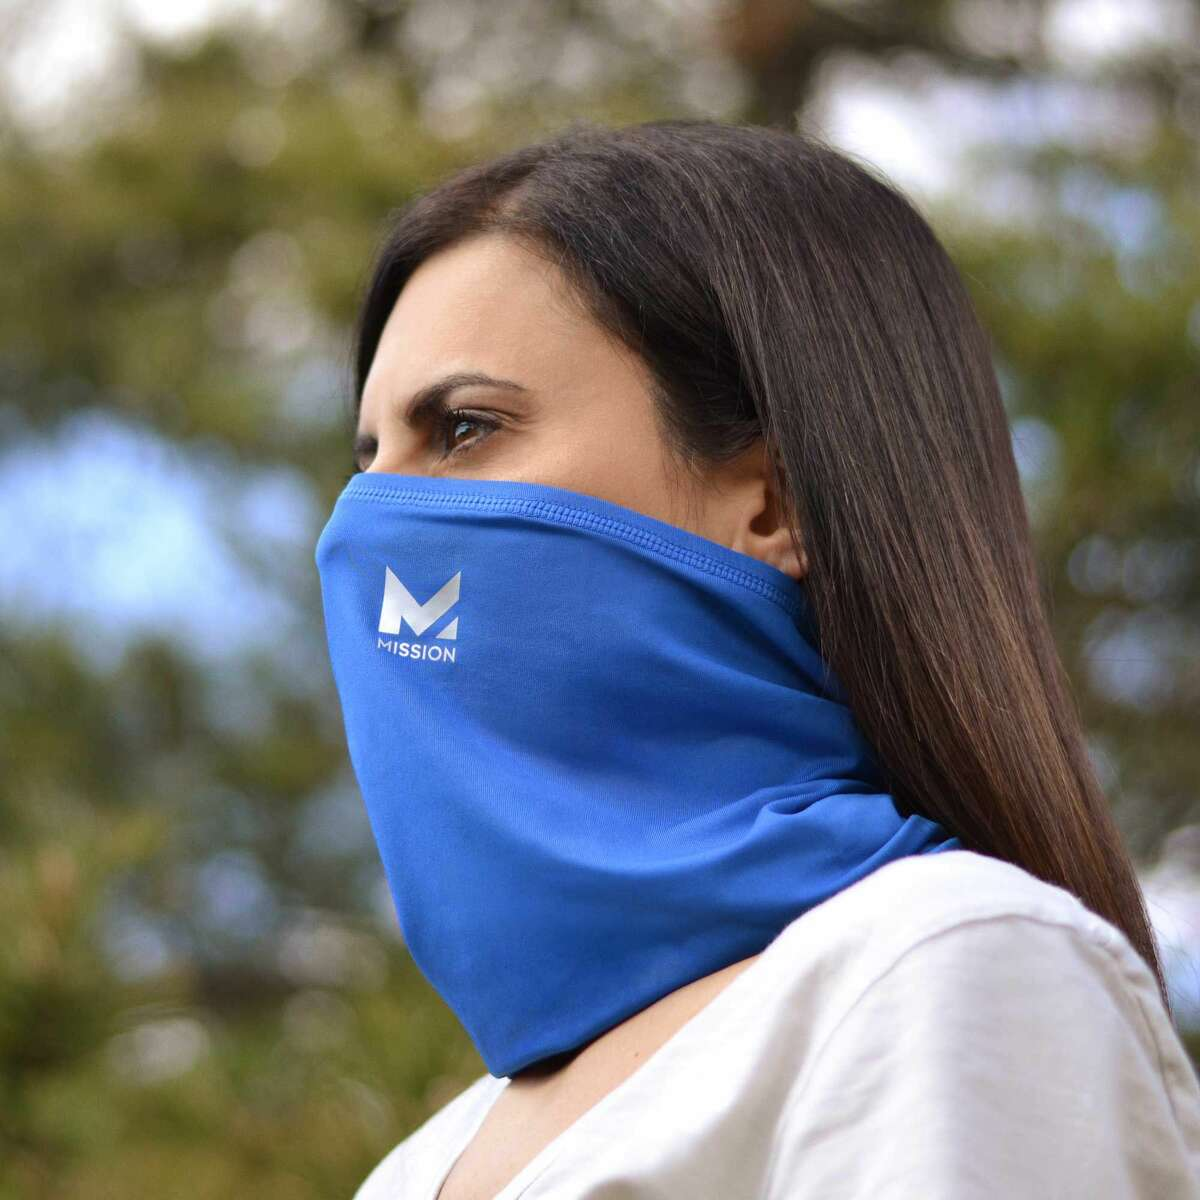 """'Any face covering is better than no face covering': UW medical director weighs in on neck gaiters After a study from Duke University on the effectiveness of 14 different types of face masks went, for lack of a better word, viral, some were quick to stow away their neck gaiters after the research found they were the least effective at blocking respiratory droplets that spread COVID-19. But now, one University of Washington medical director is coming to the defense of neck gaiters. """"Out in the community, any type of face covering is going to do fine,"""" said Dr. Mark Harrast, medical director of the Sports Medicine Center at Husky Stadium. """"Any face covering is better than no face covering at all."""" The defense comes after the widely read Duke study found that neck gaiters and fleeces """"seemed to disperse the largest droplets into a multitude of smaller droplets."""" To read the full story from reporter Callie Craighead, click here."""